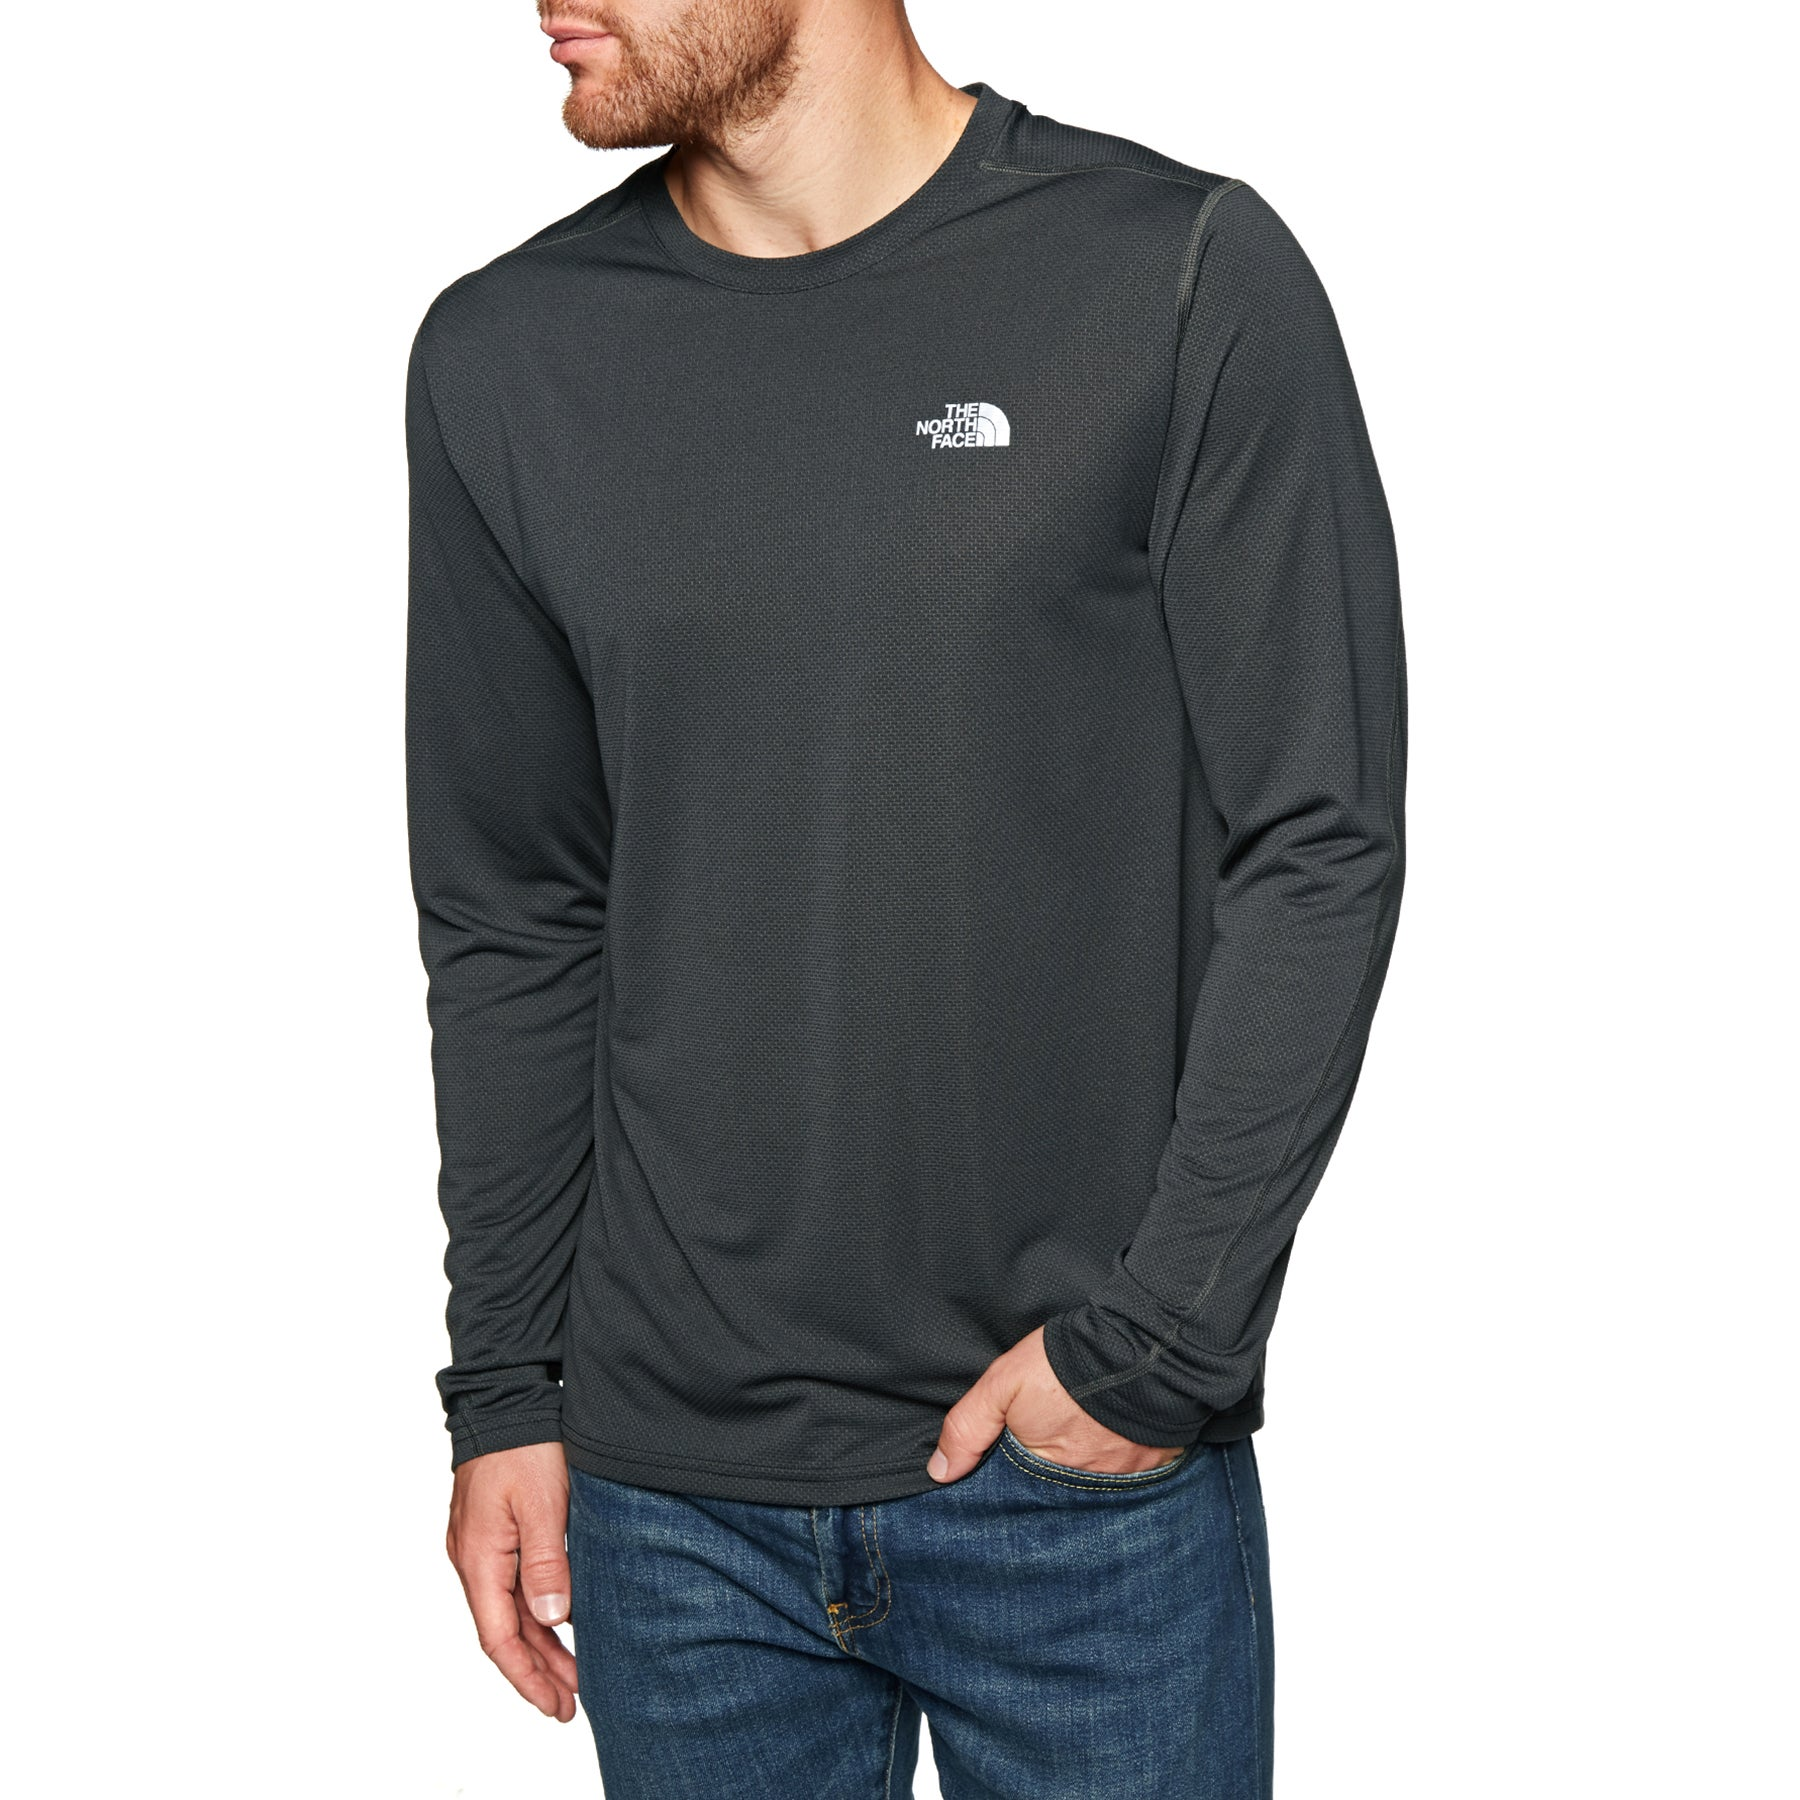 11ee93a2e North Face 24 7 Tech LS Running Top - Free Delivery options on All Orders  from Surfdome